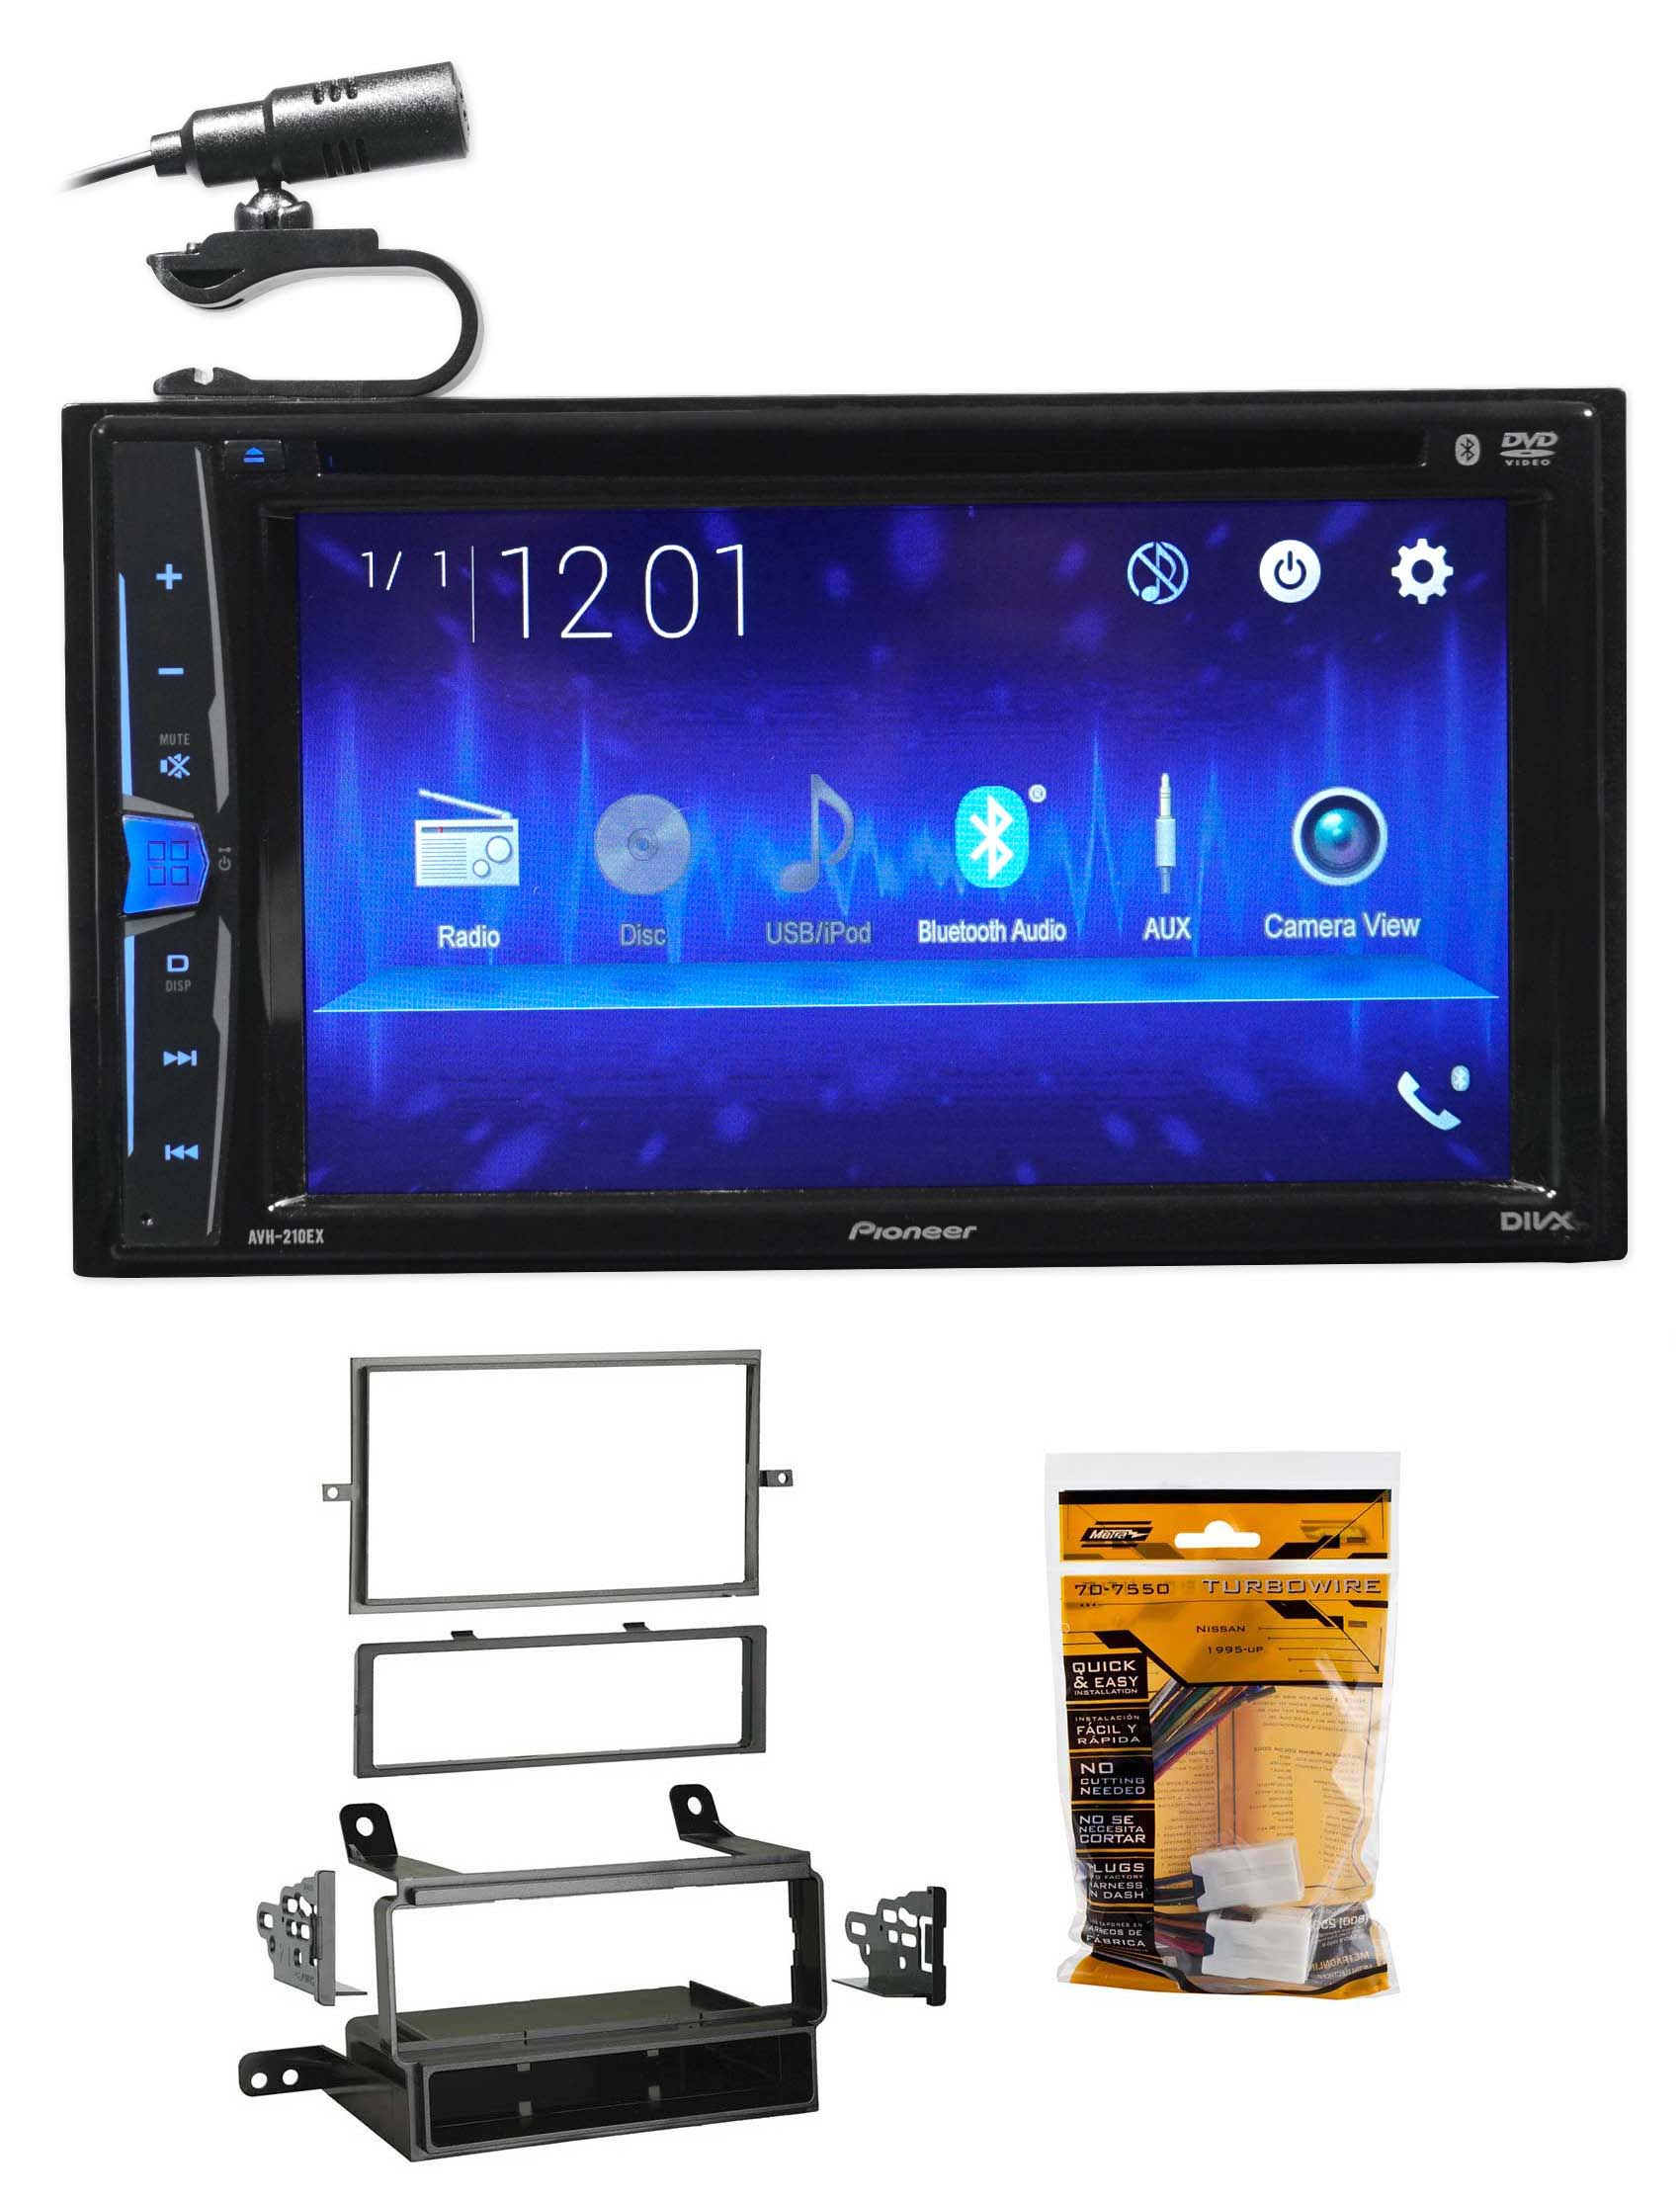 Pioneer Dvd Cd Bluetooth Receiver Iphone Android Usb For 05 07 Ty8100 Toyota Factory Radio Wiring Harness Adapter Metra 701761 Click Thumbnails To Enlarge